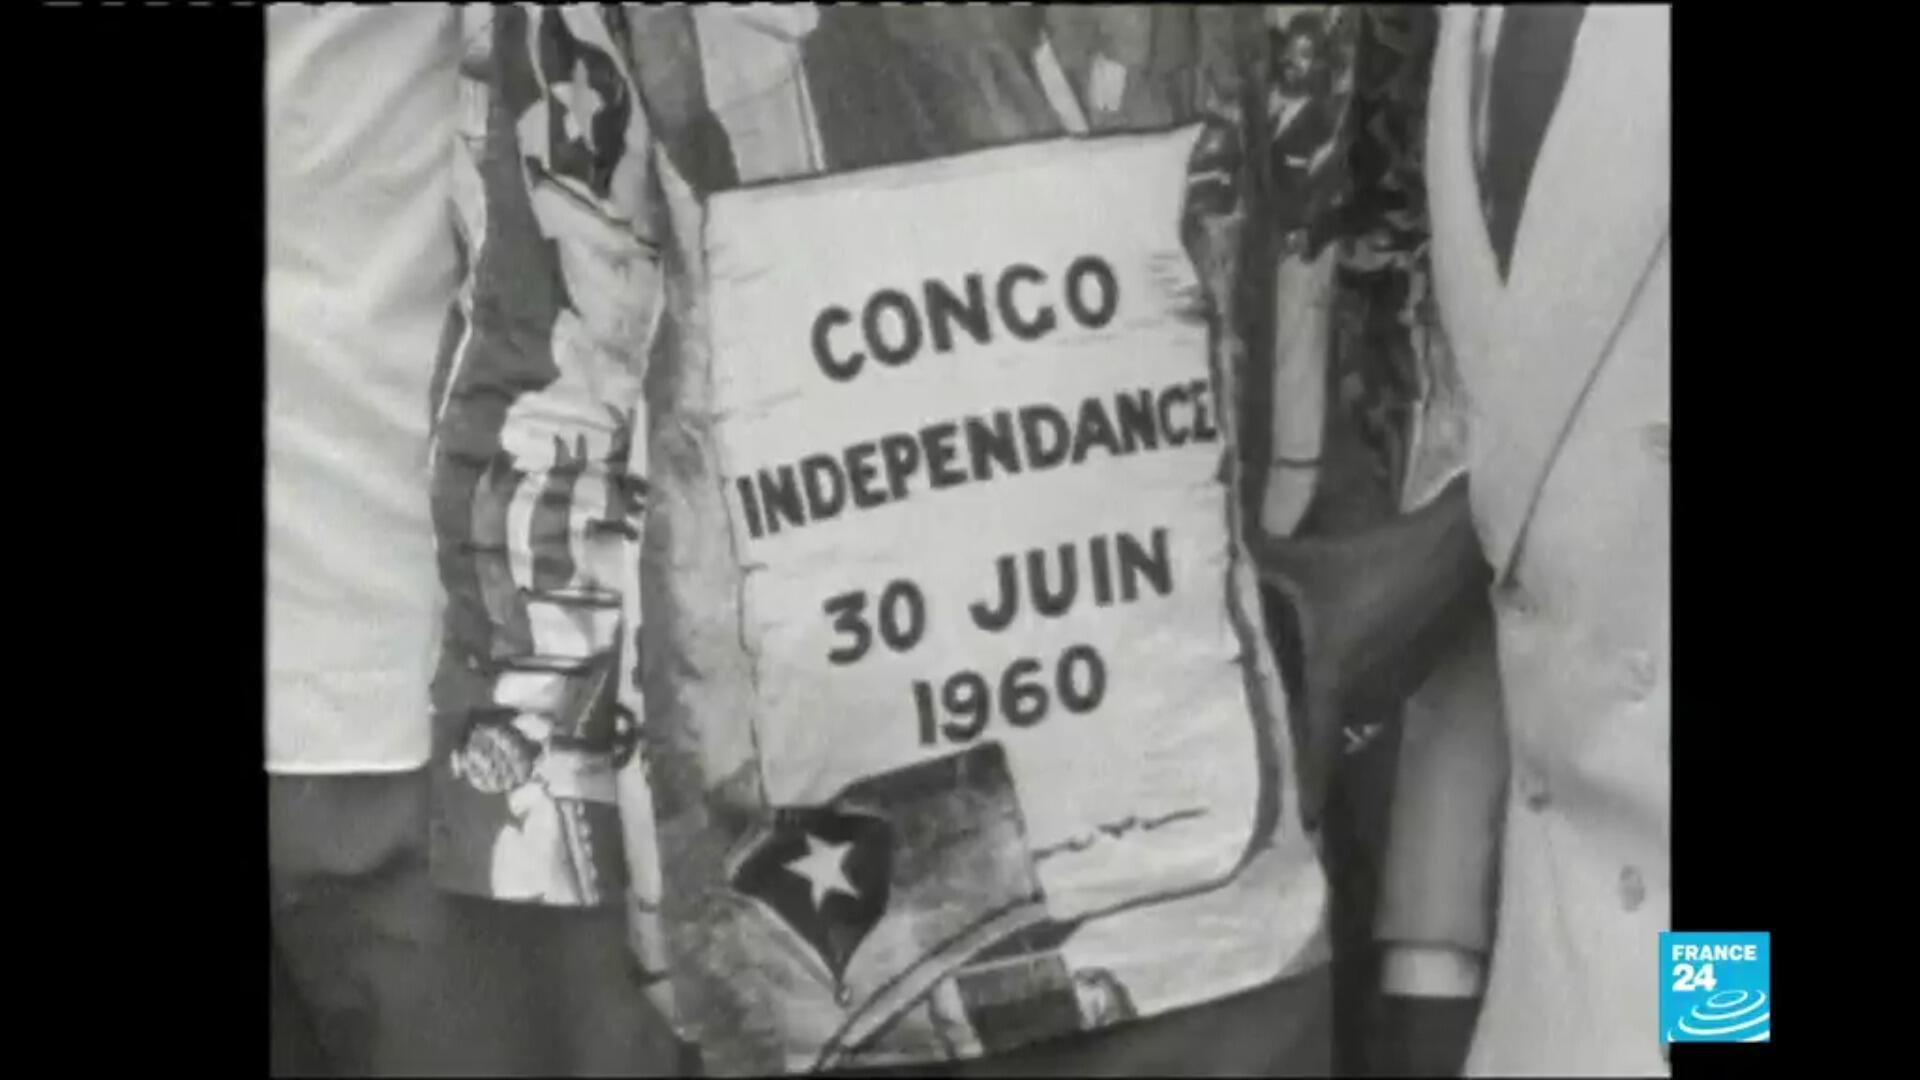 DR Congo marks 60 years of independence